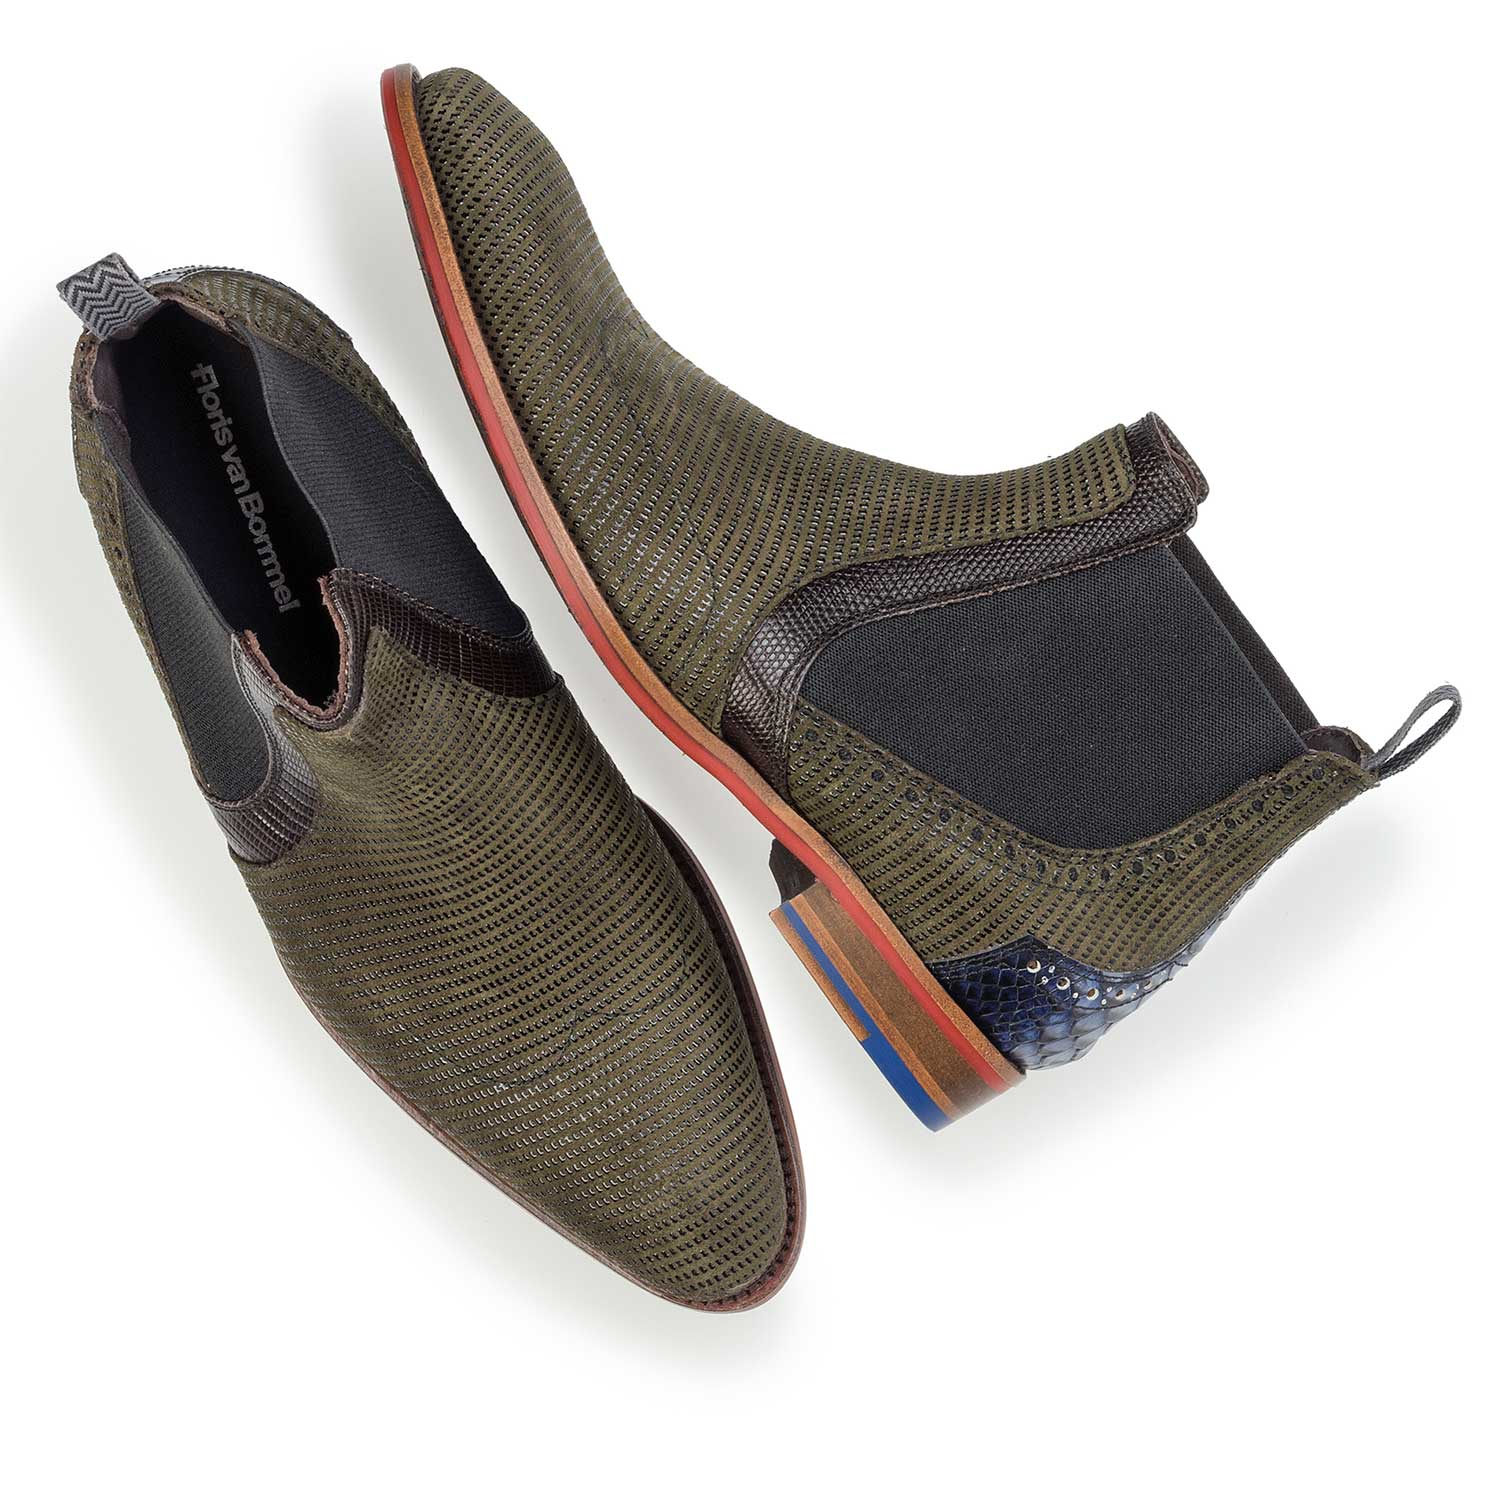 10455/02 - Olive green Chelsea boot made of suede leather